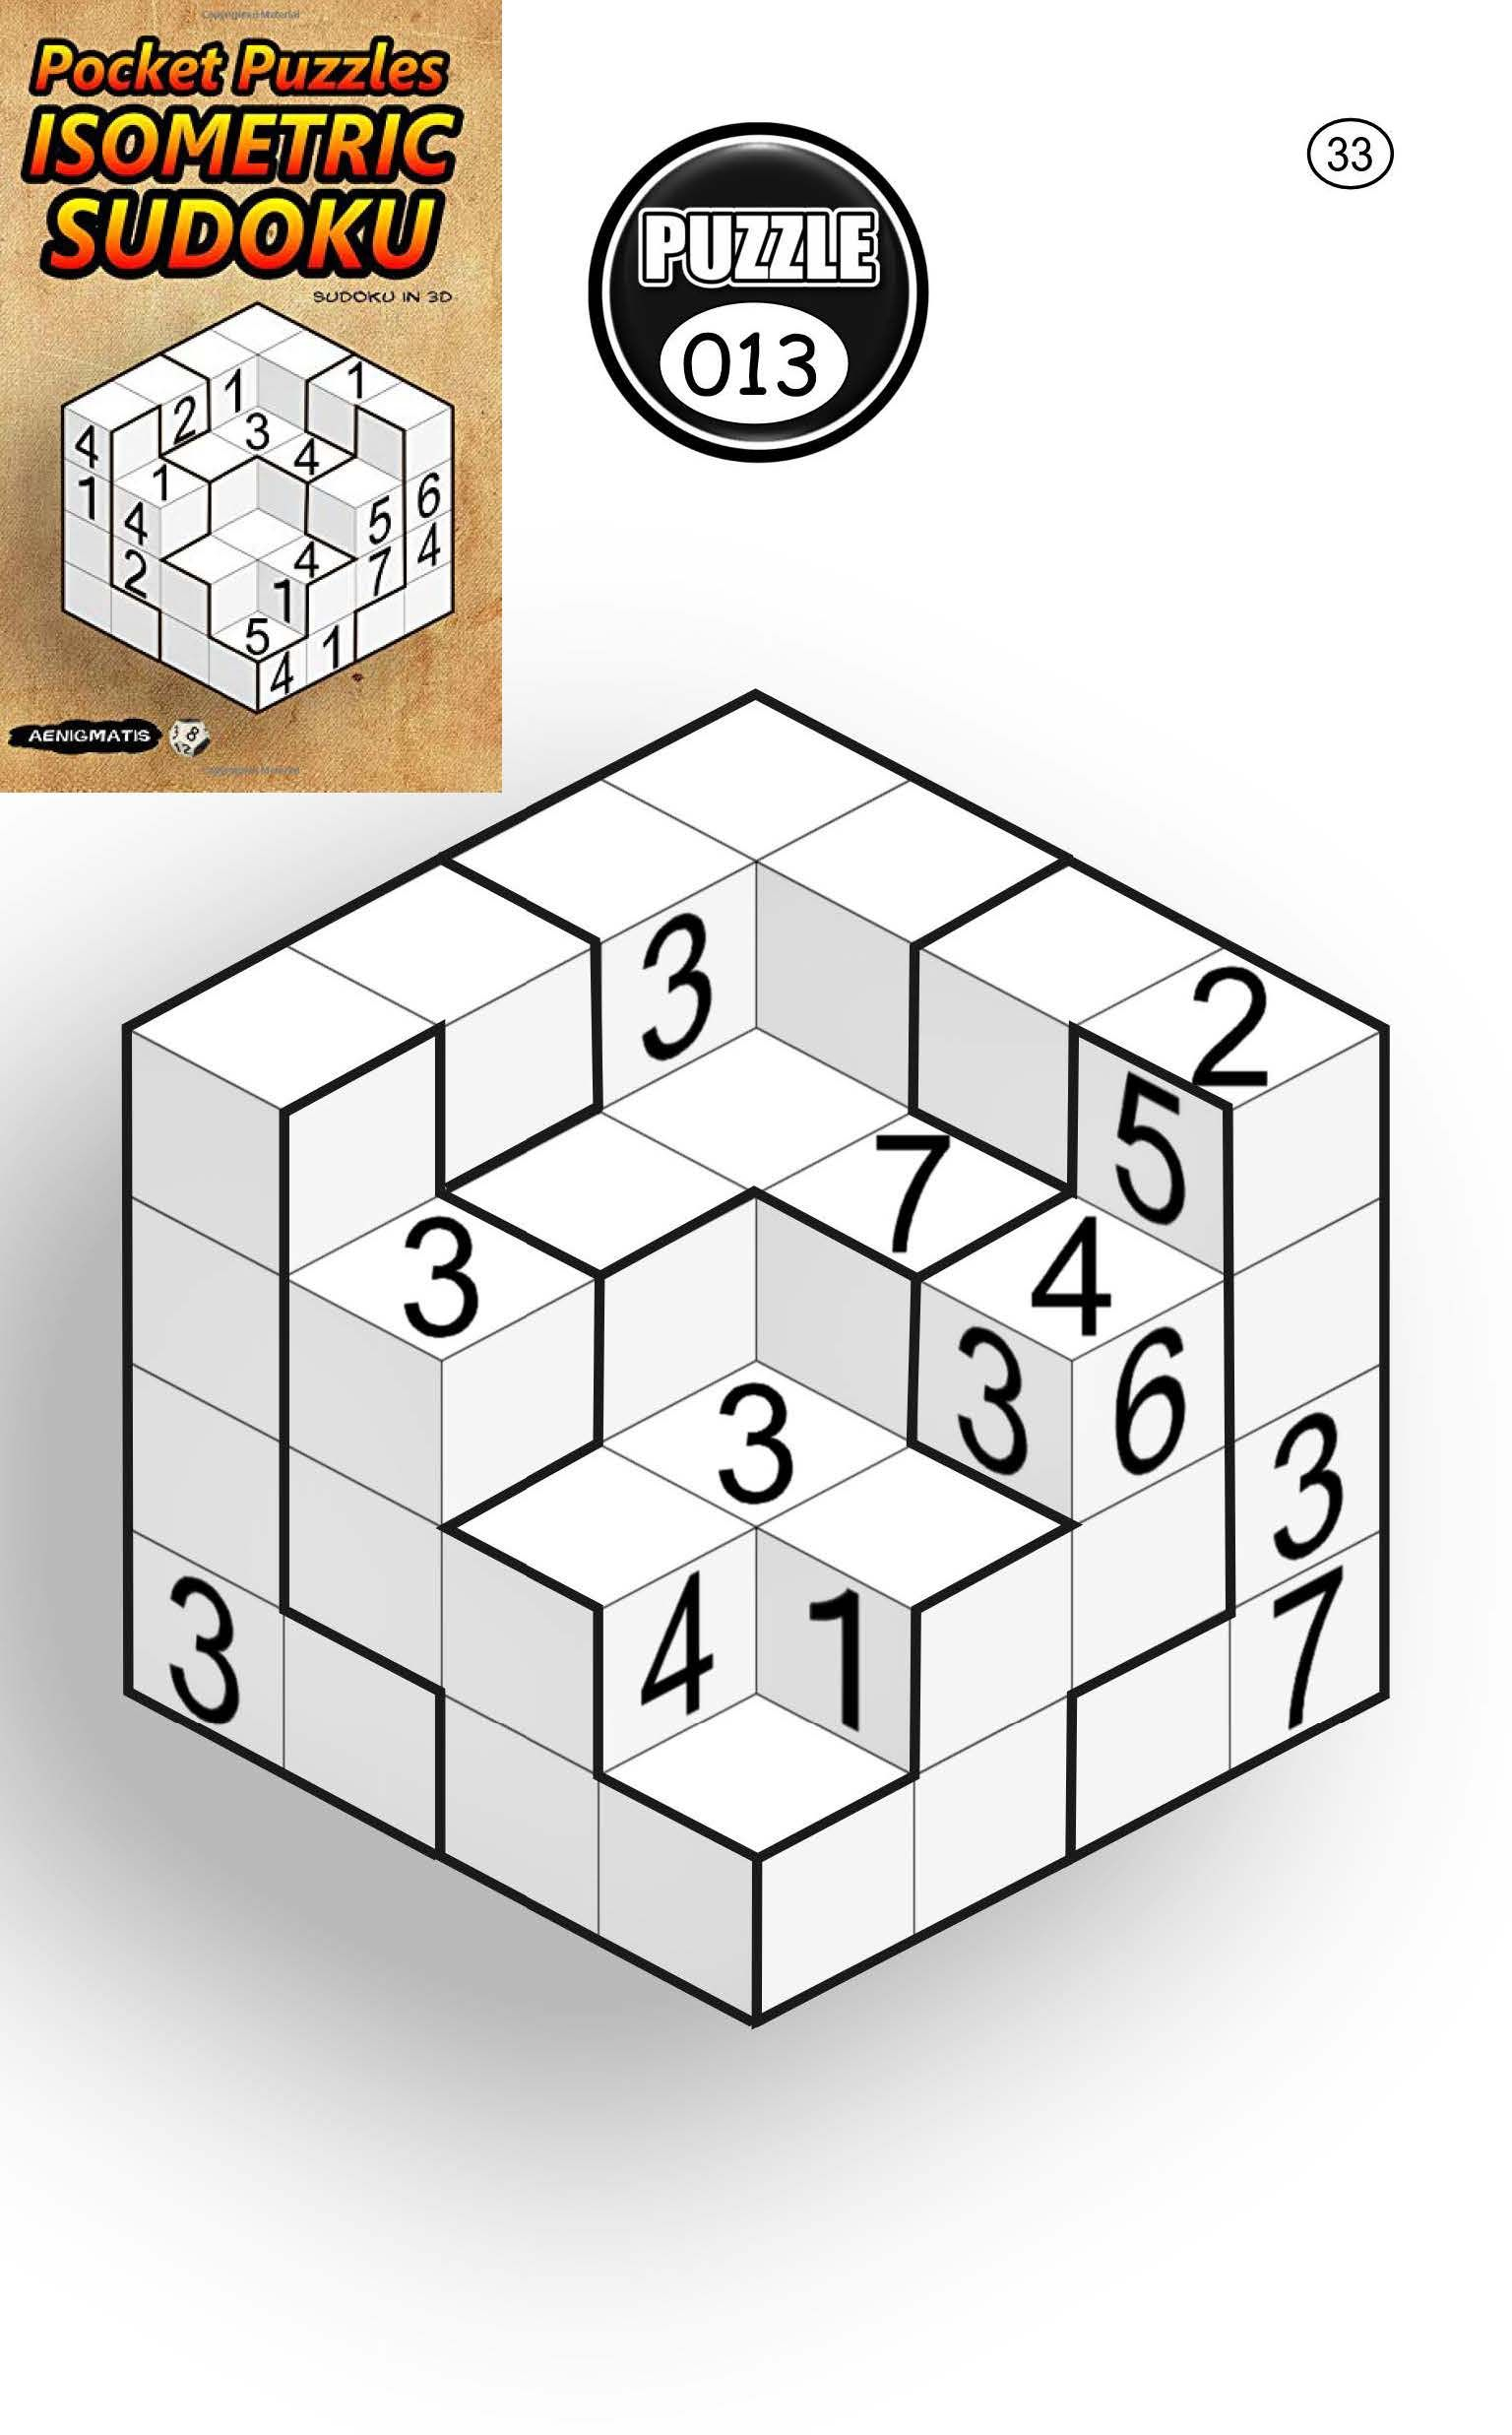 Pocket Puzzles Isometric Sudoku: Sudoku In 3D Amazon